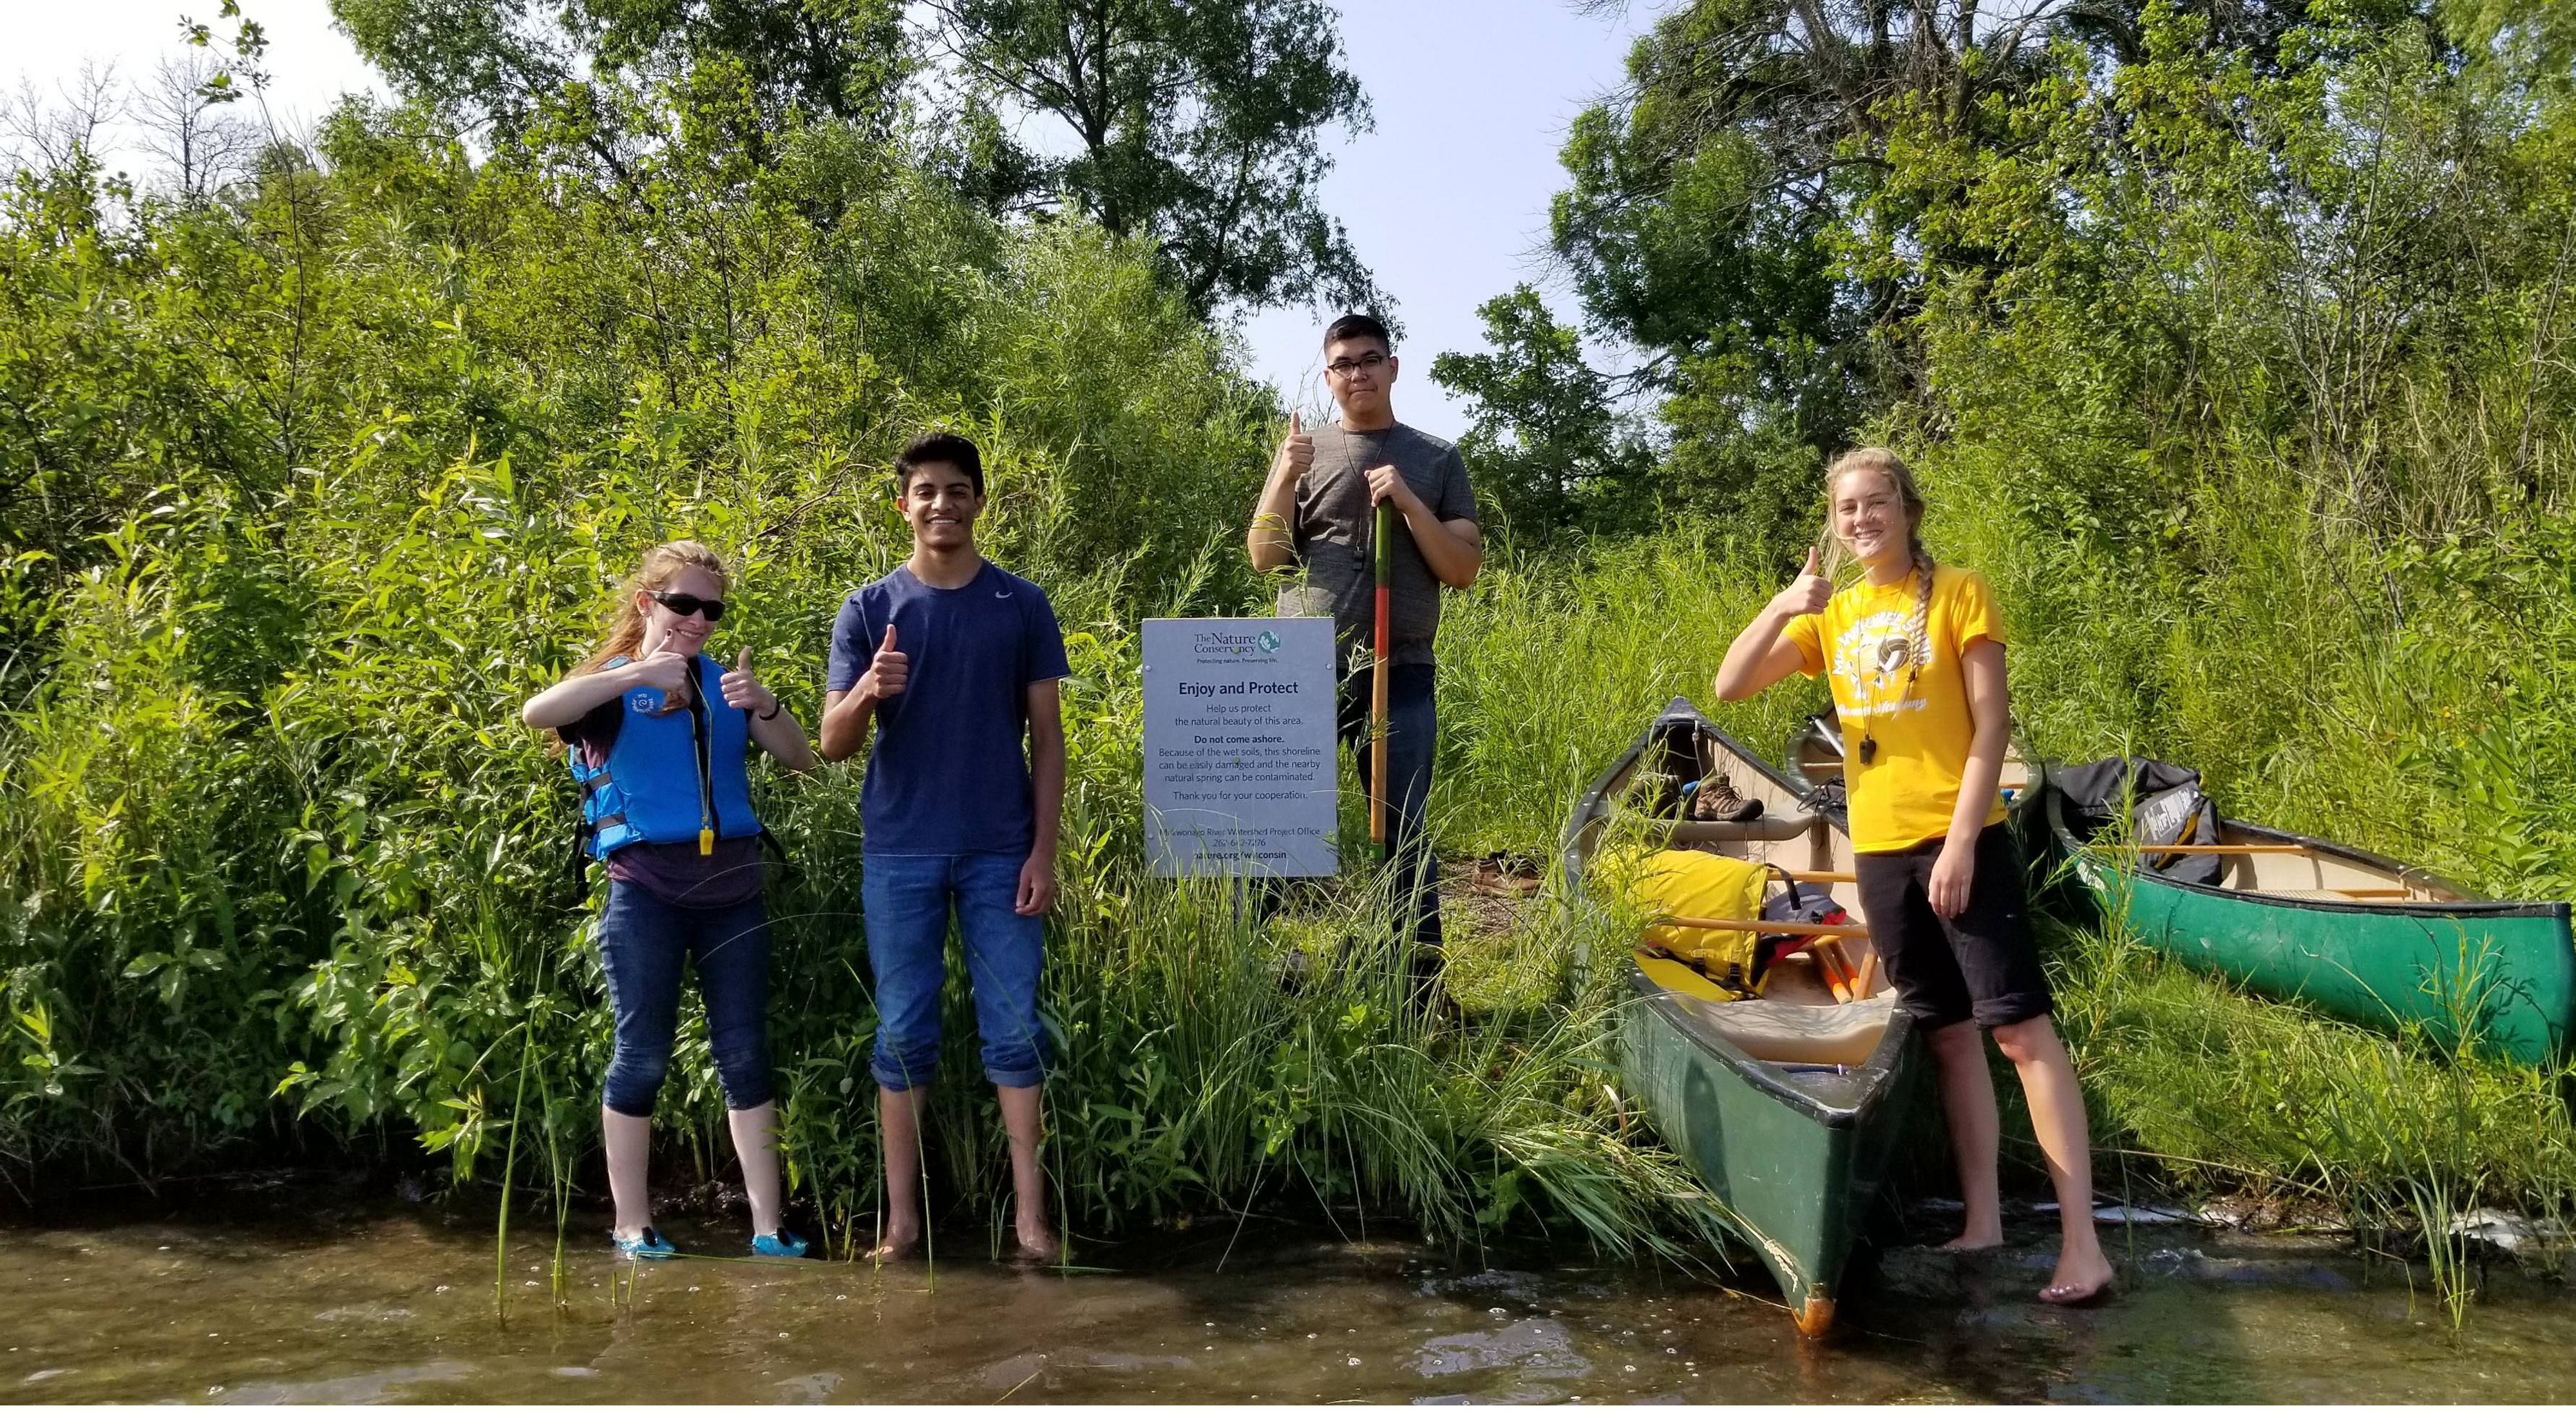 Two young men and two young women stand on the shore and in the shallow water of Lulu Lake next to 2 canoes smiling and giving the thumbs up sign